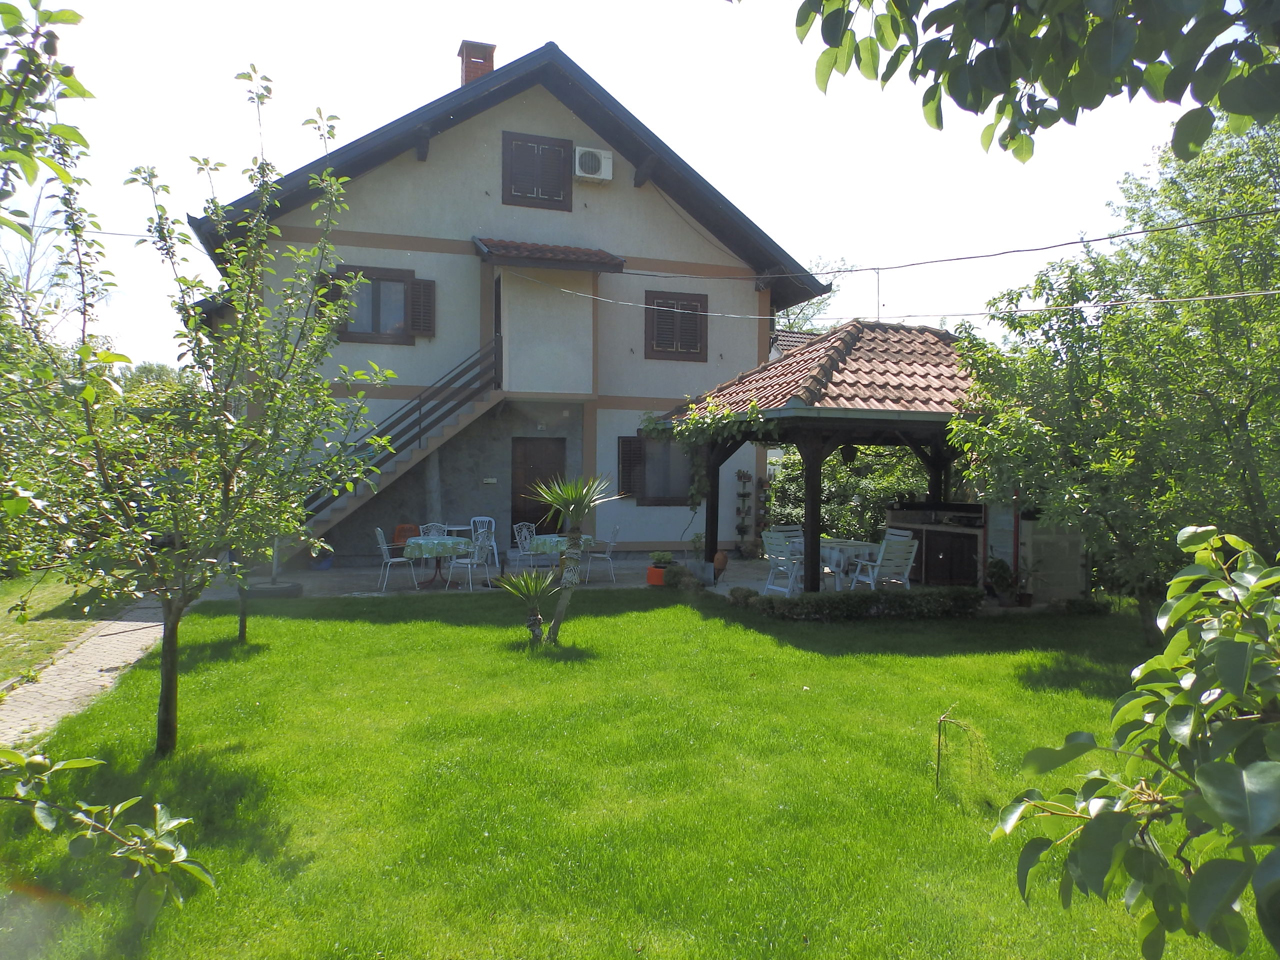 VILLA BILJANA-TESIC Private accommodation Srebrno jezero - Photo 4